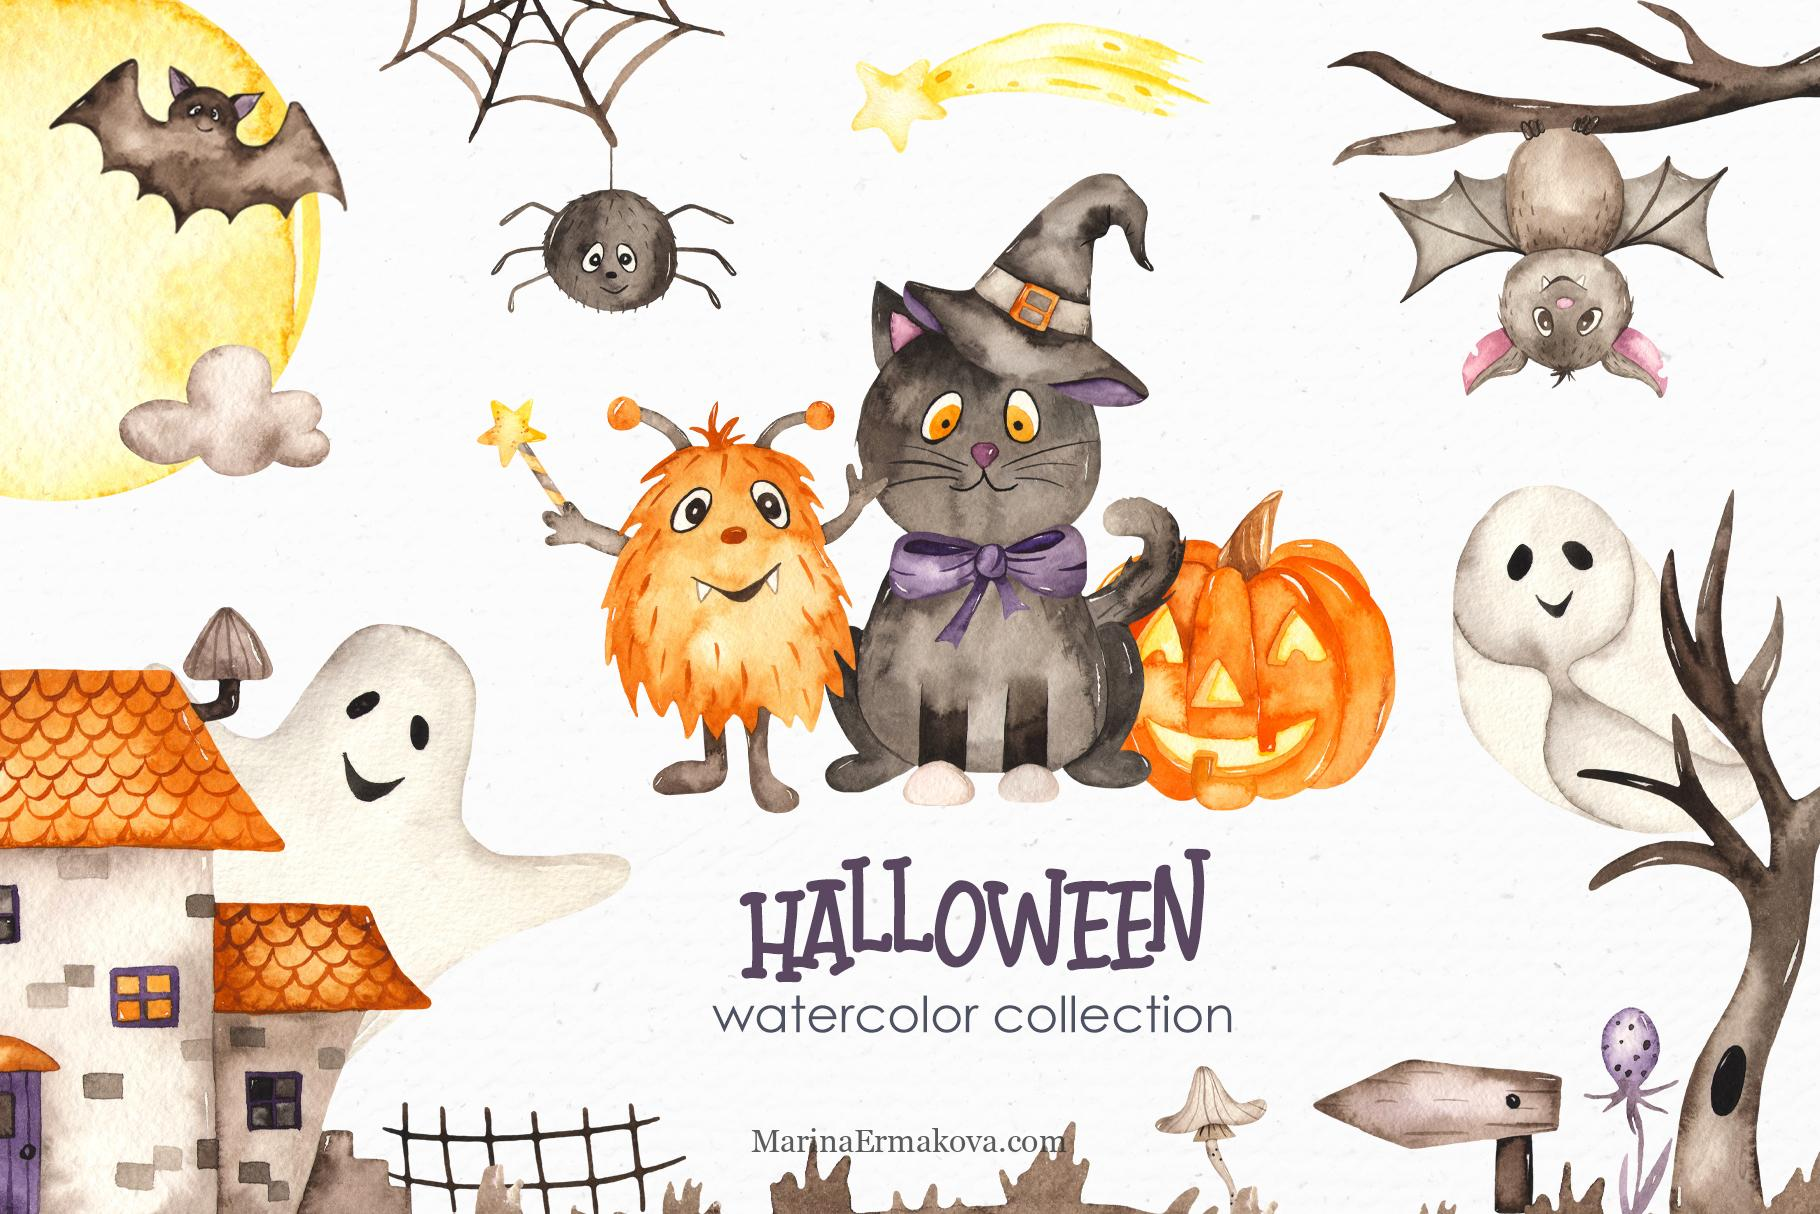 Halloween watercolor kids cover collection